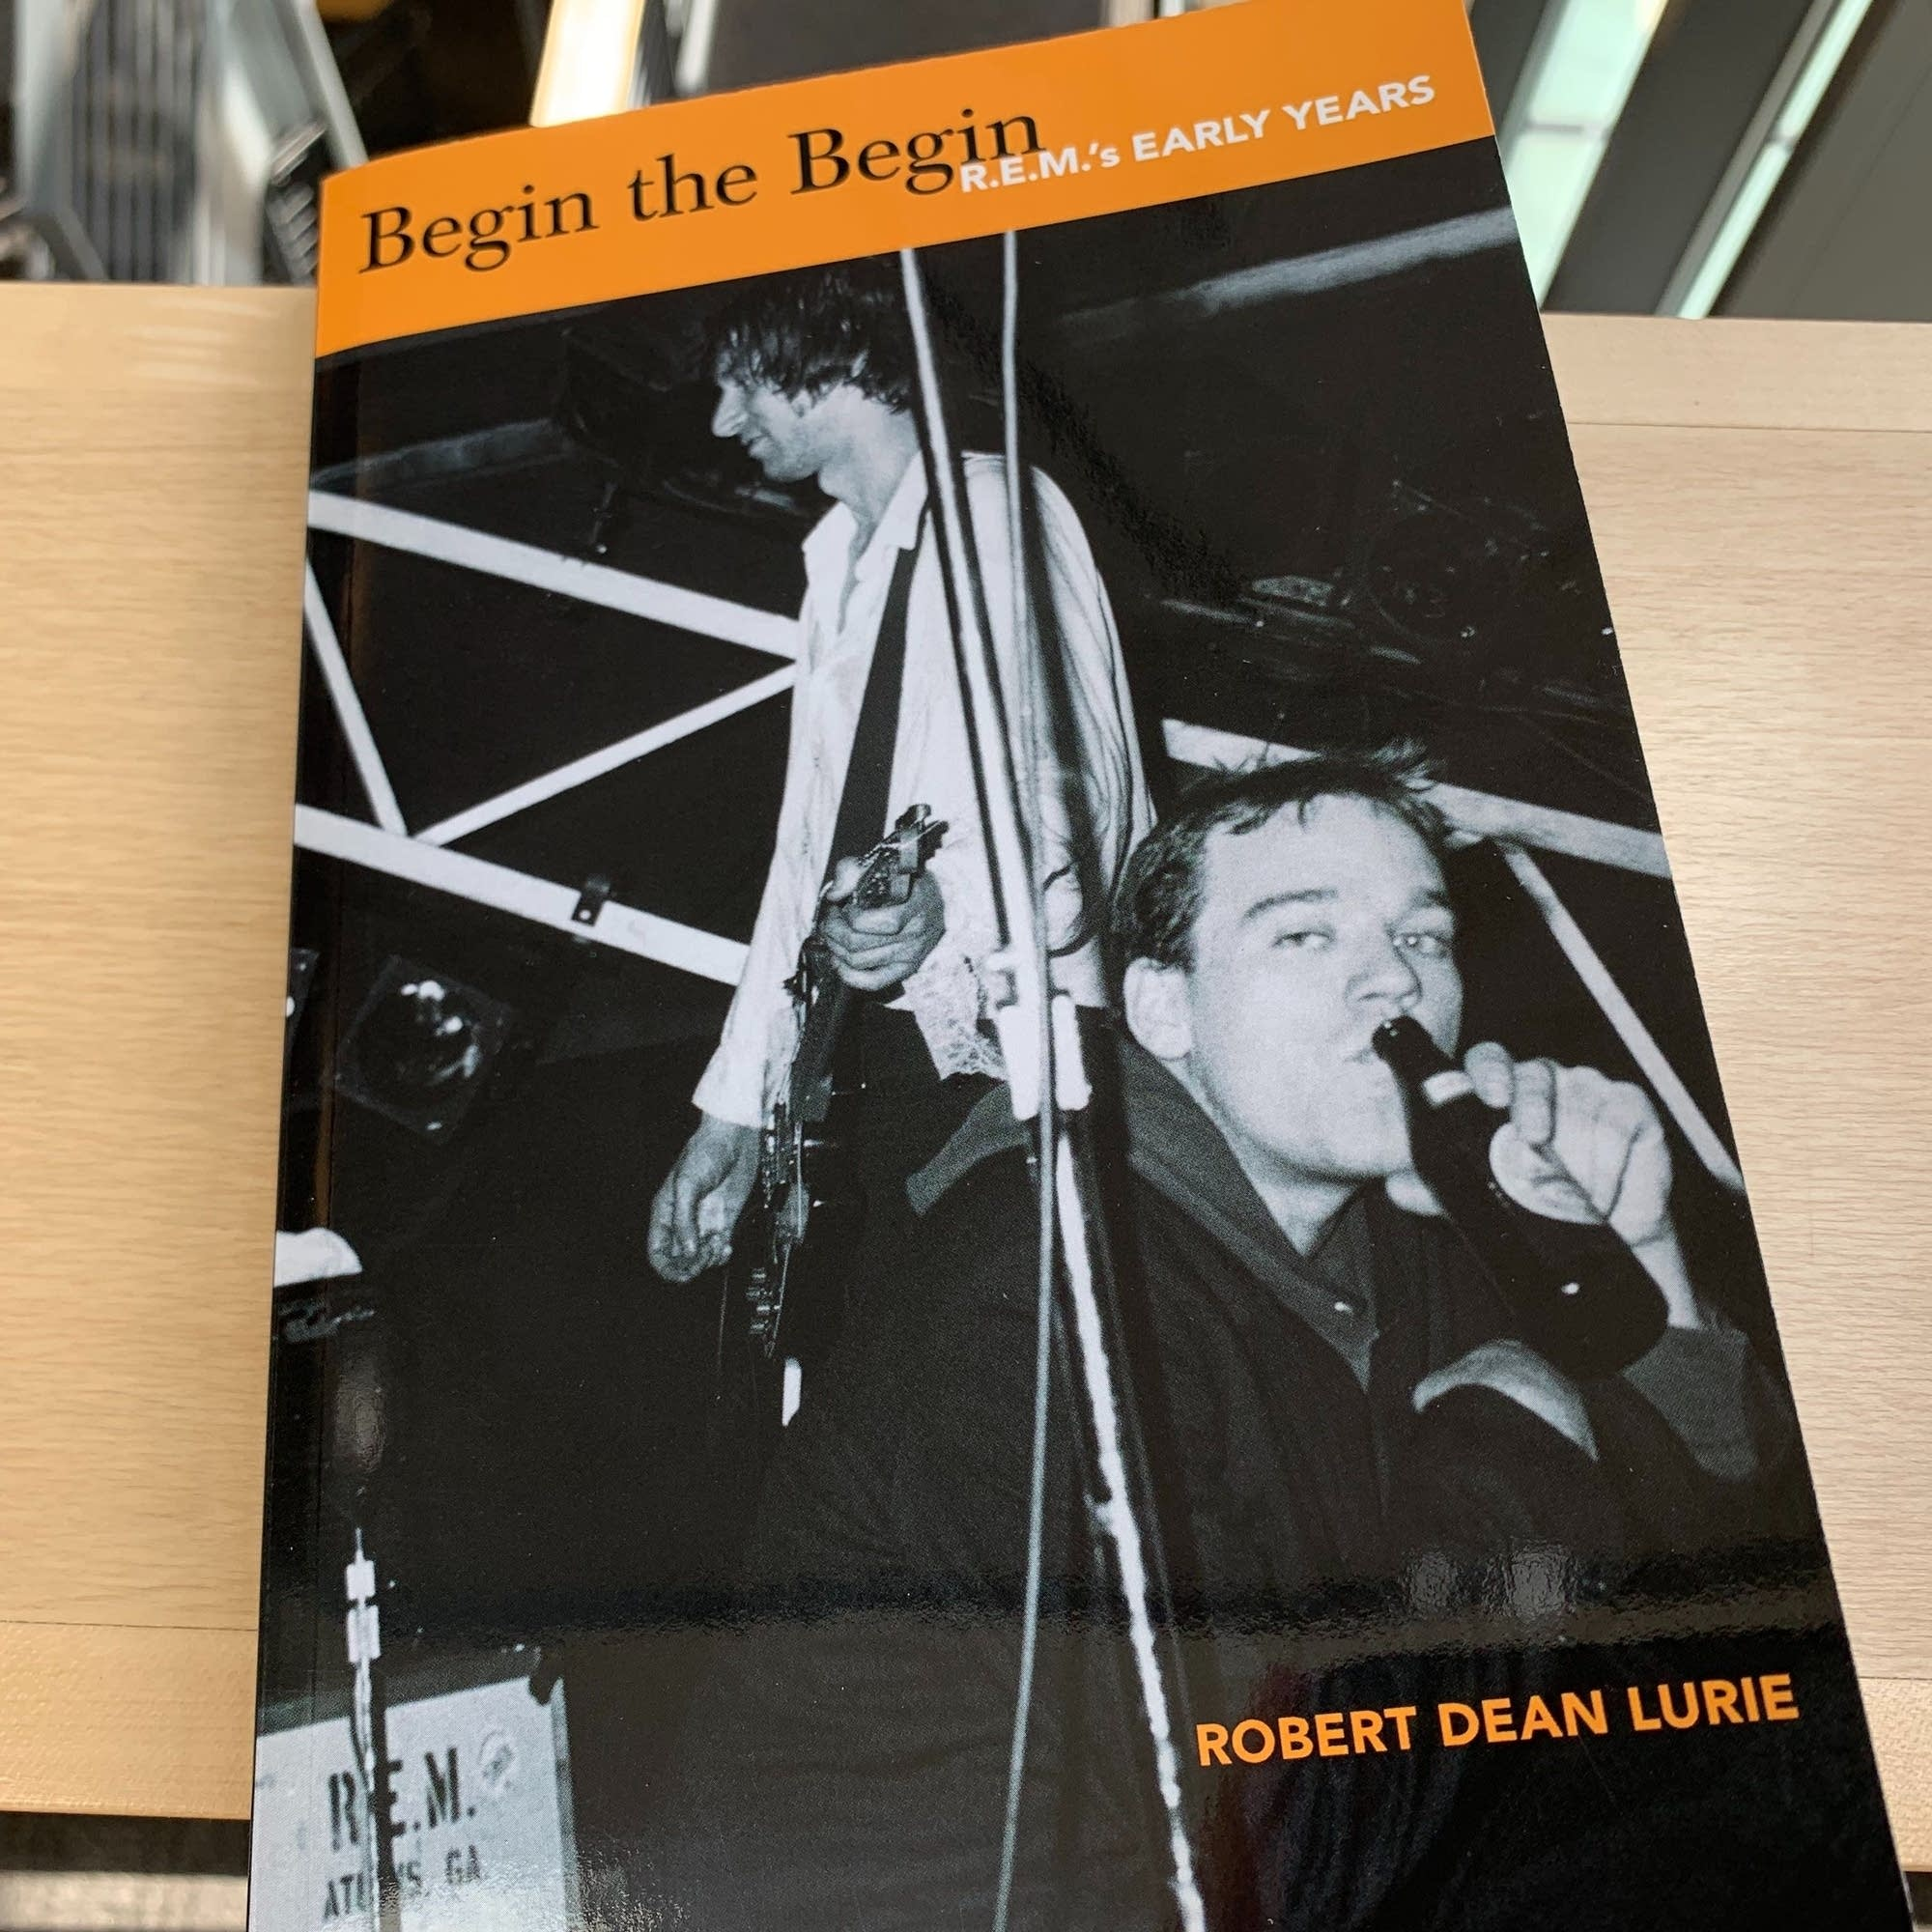 Robert Dean Lurie's 'Begin the Begin.'